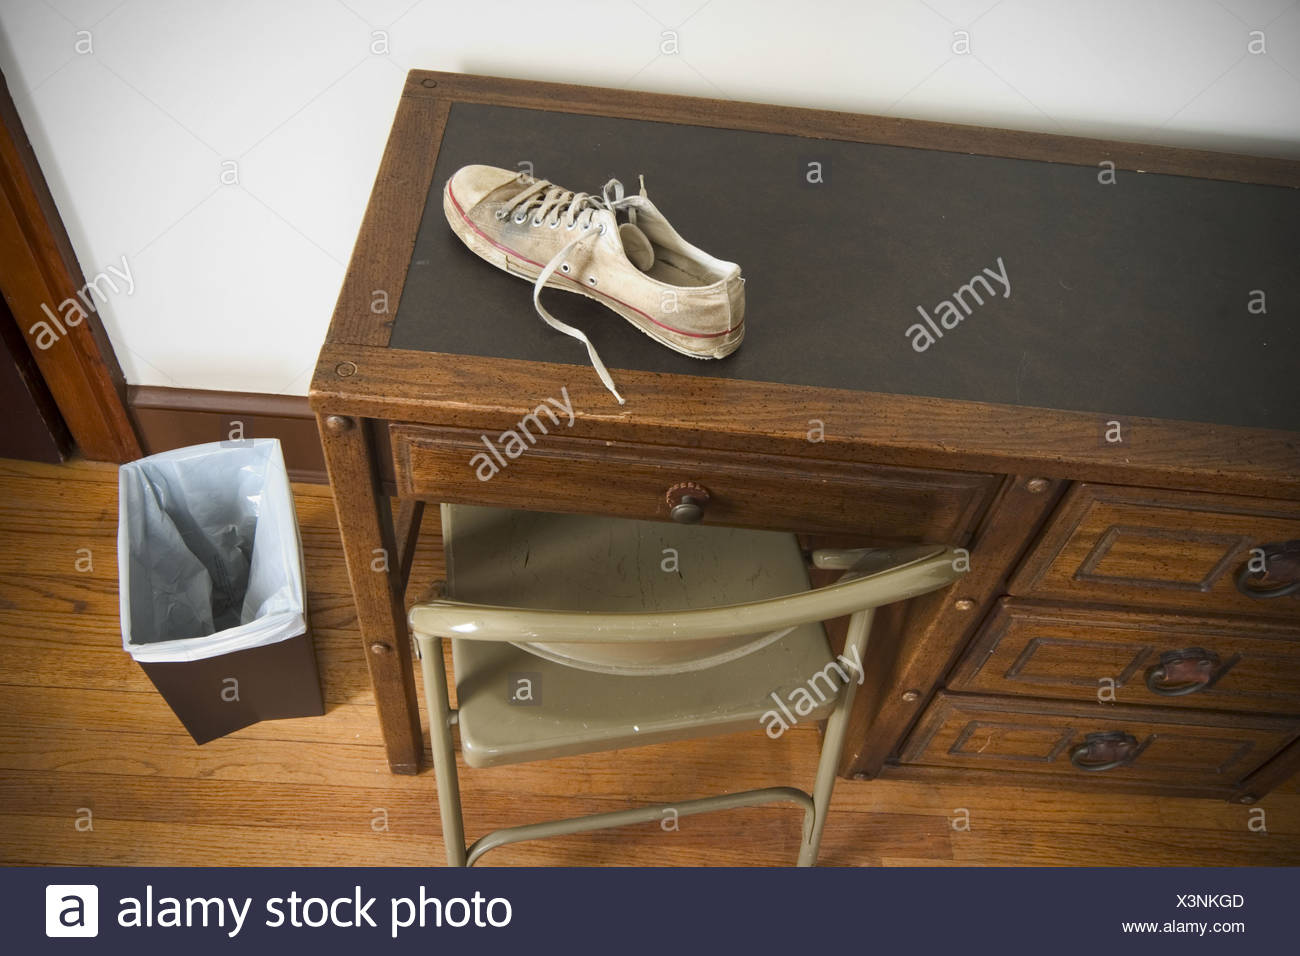 Man´s sneaker on top of a desk in a bedroom. - Stock Image